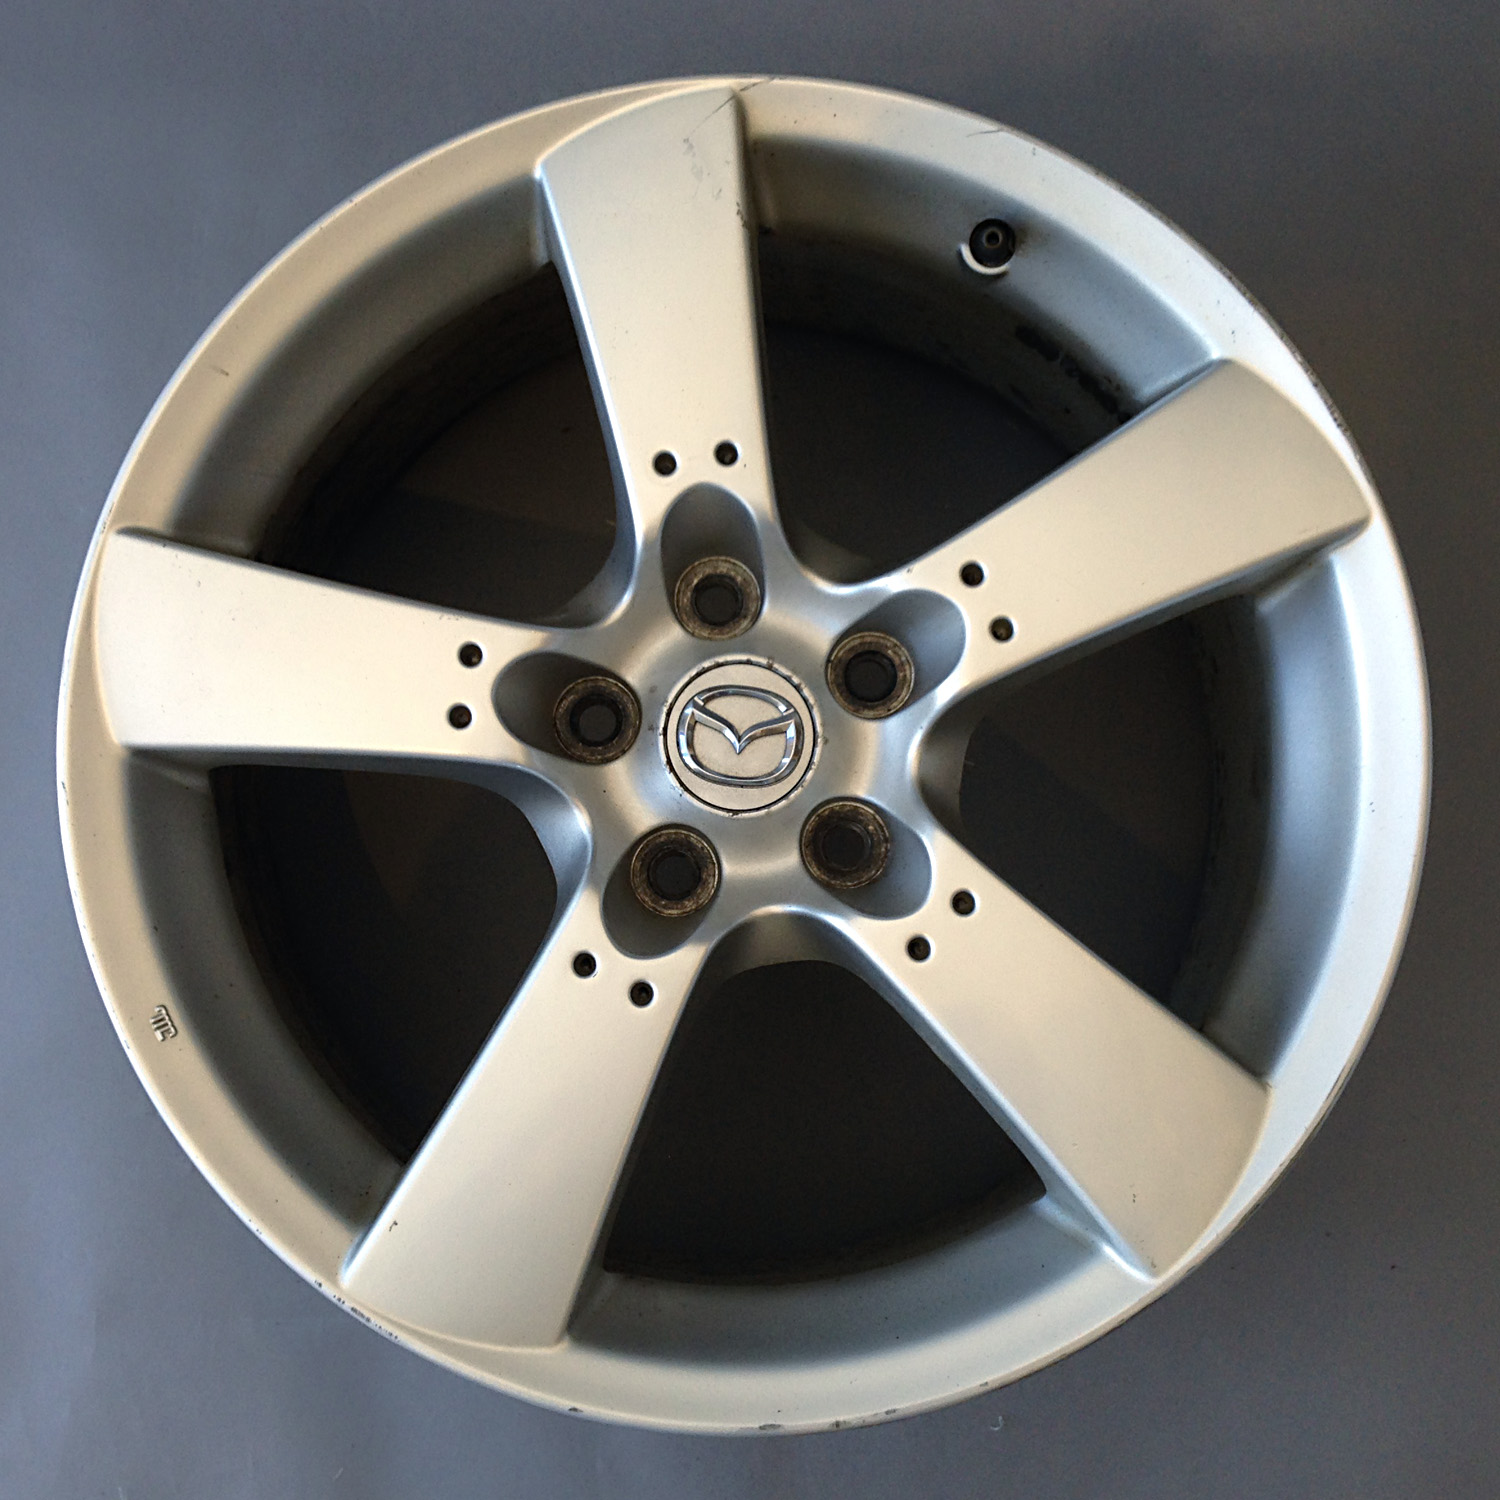 Nissan Sentra Rims >> Used and New OEM Rims | Summer and Winter Wheels | Used rims in Hamilton, Burlington, Ancaster ...